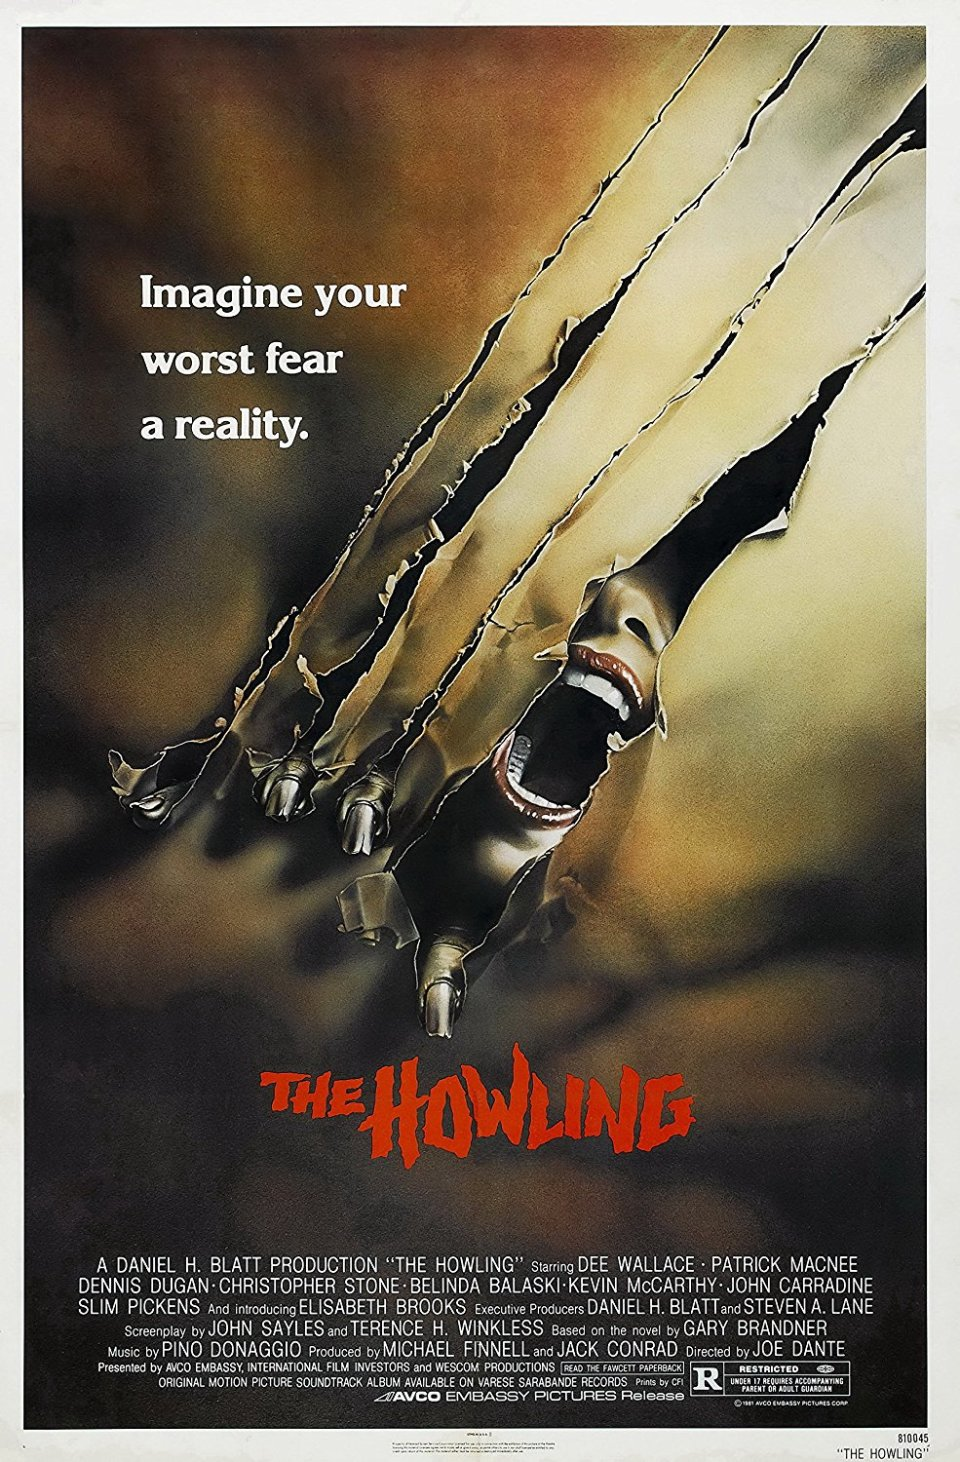 008-1981-Howling-US